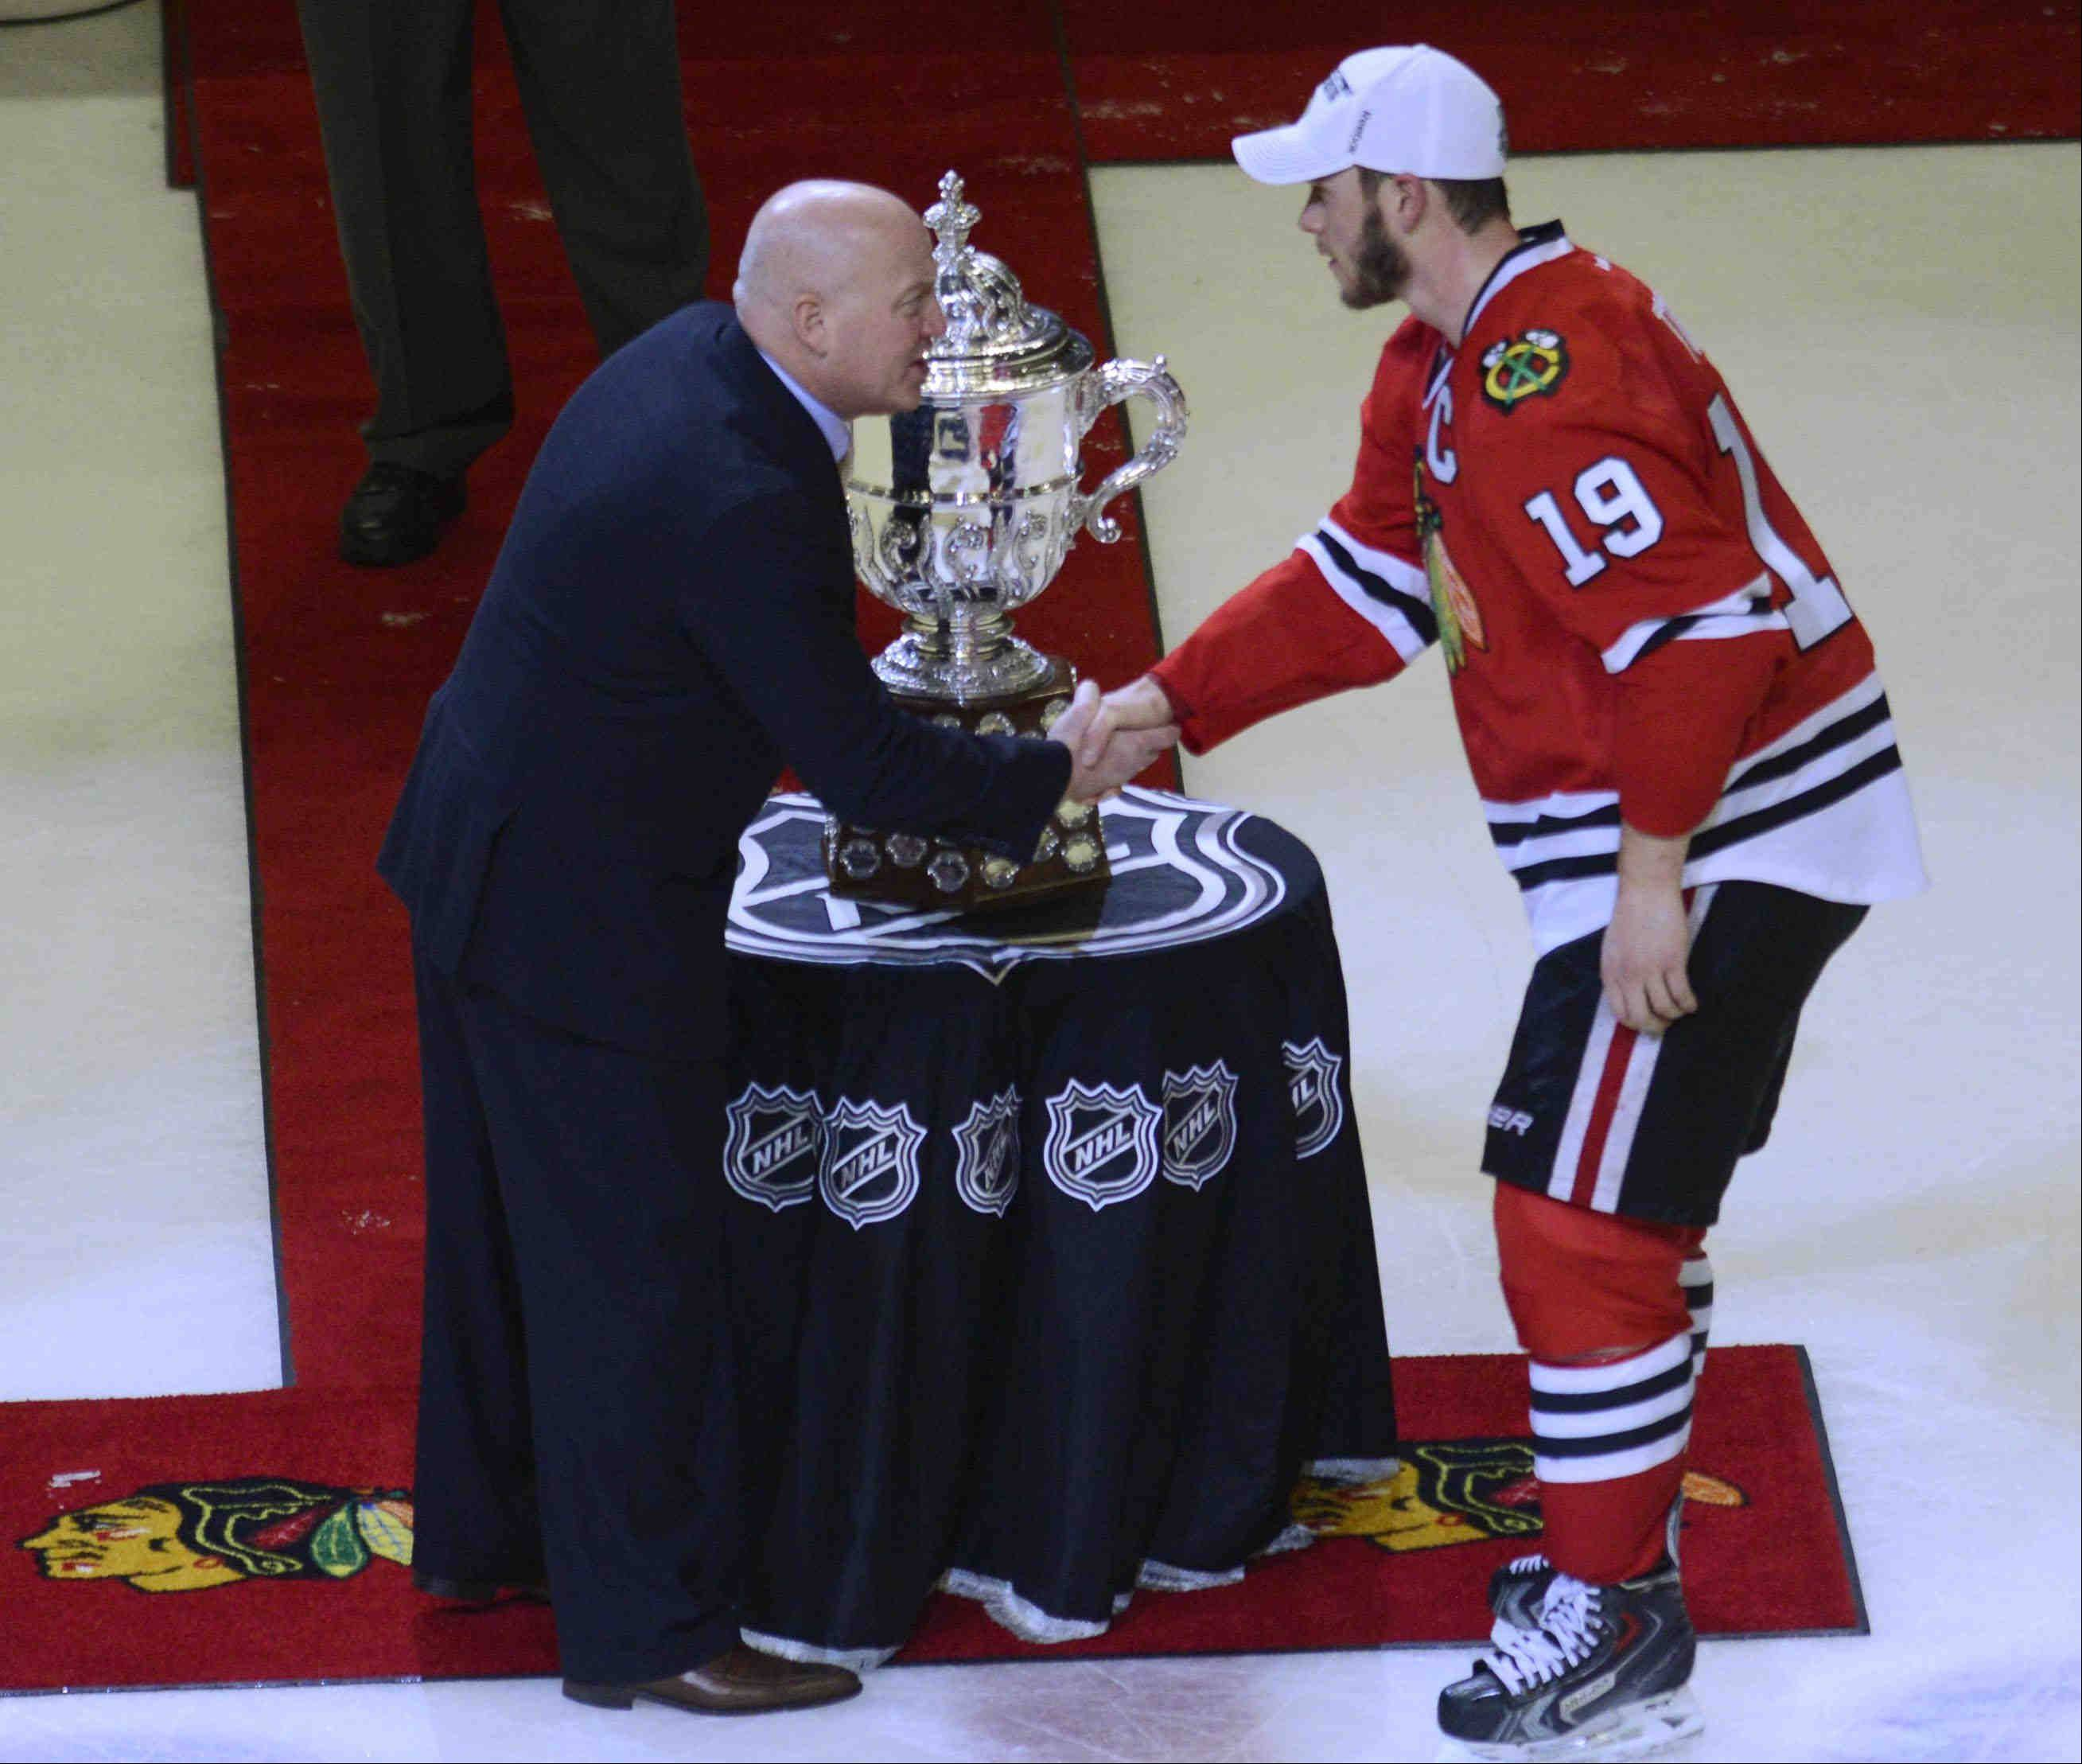 Blackhawks fans, get ready for the parade